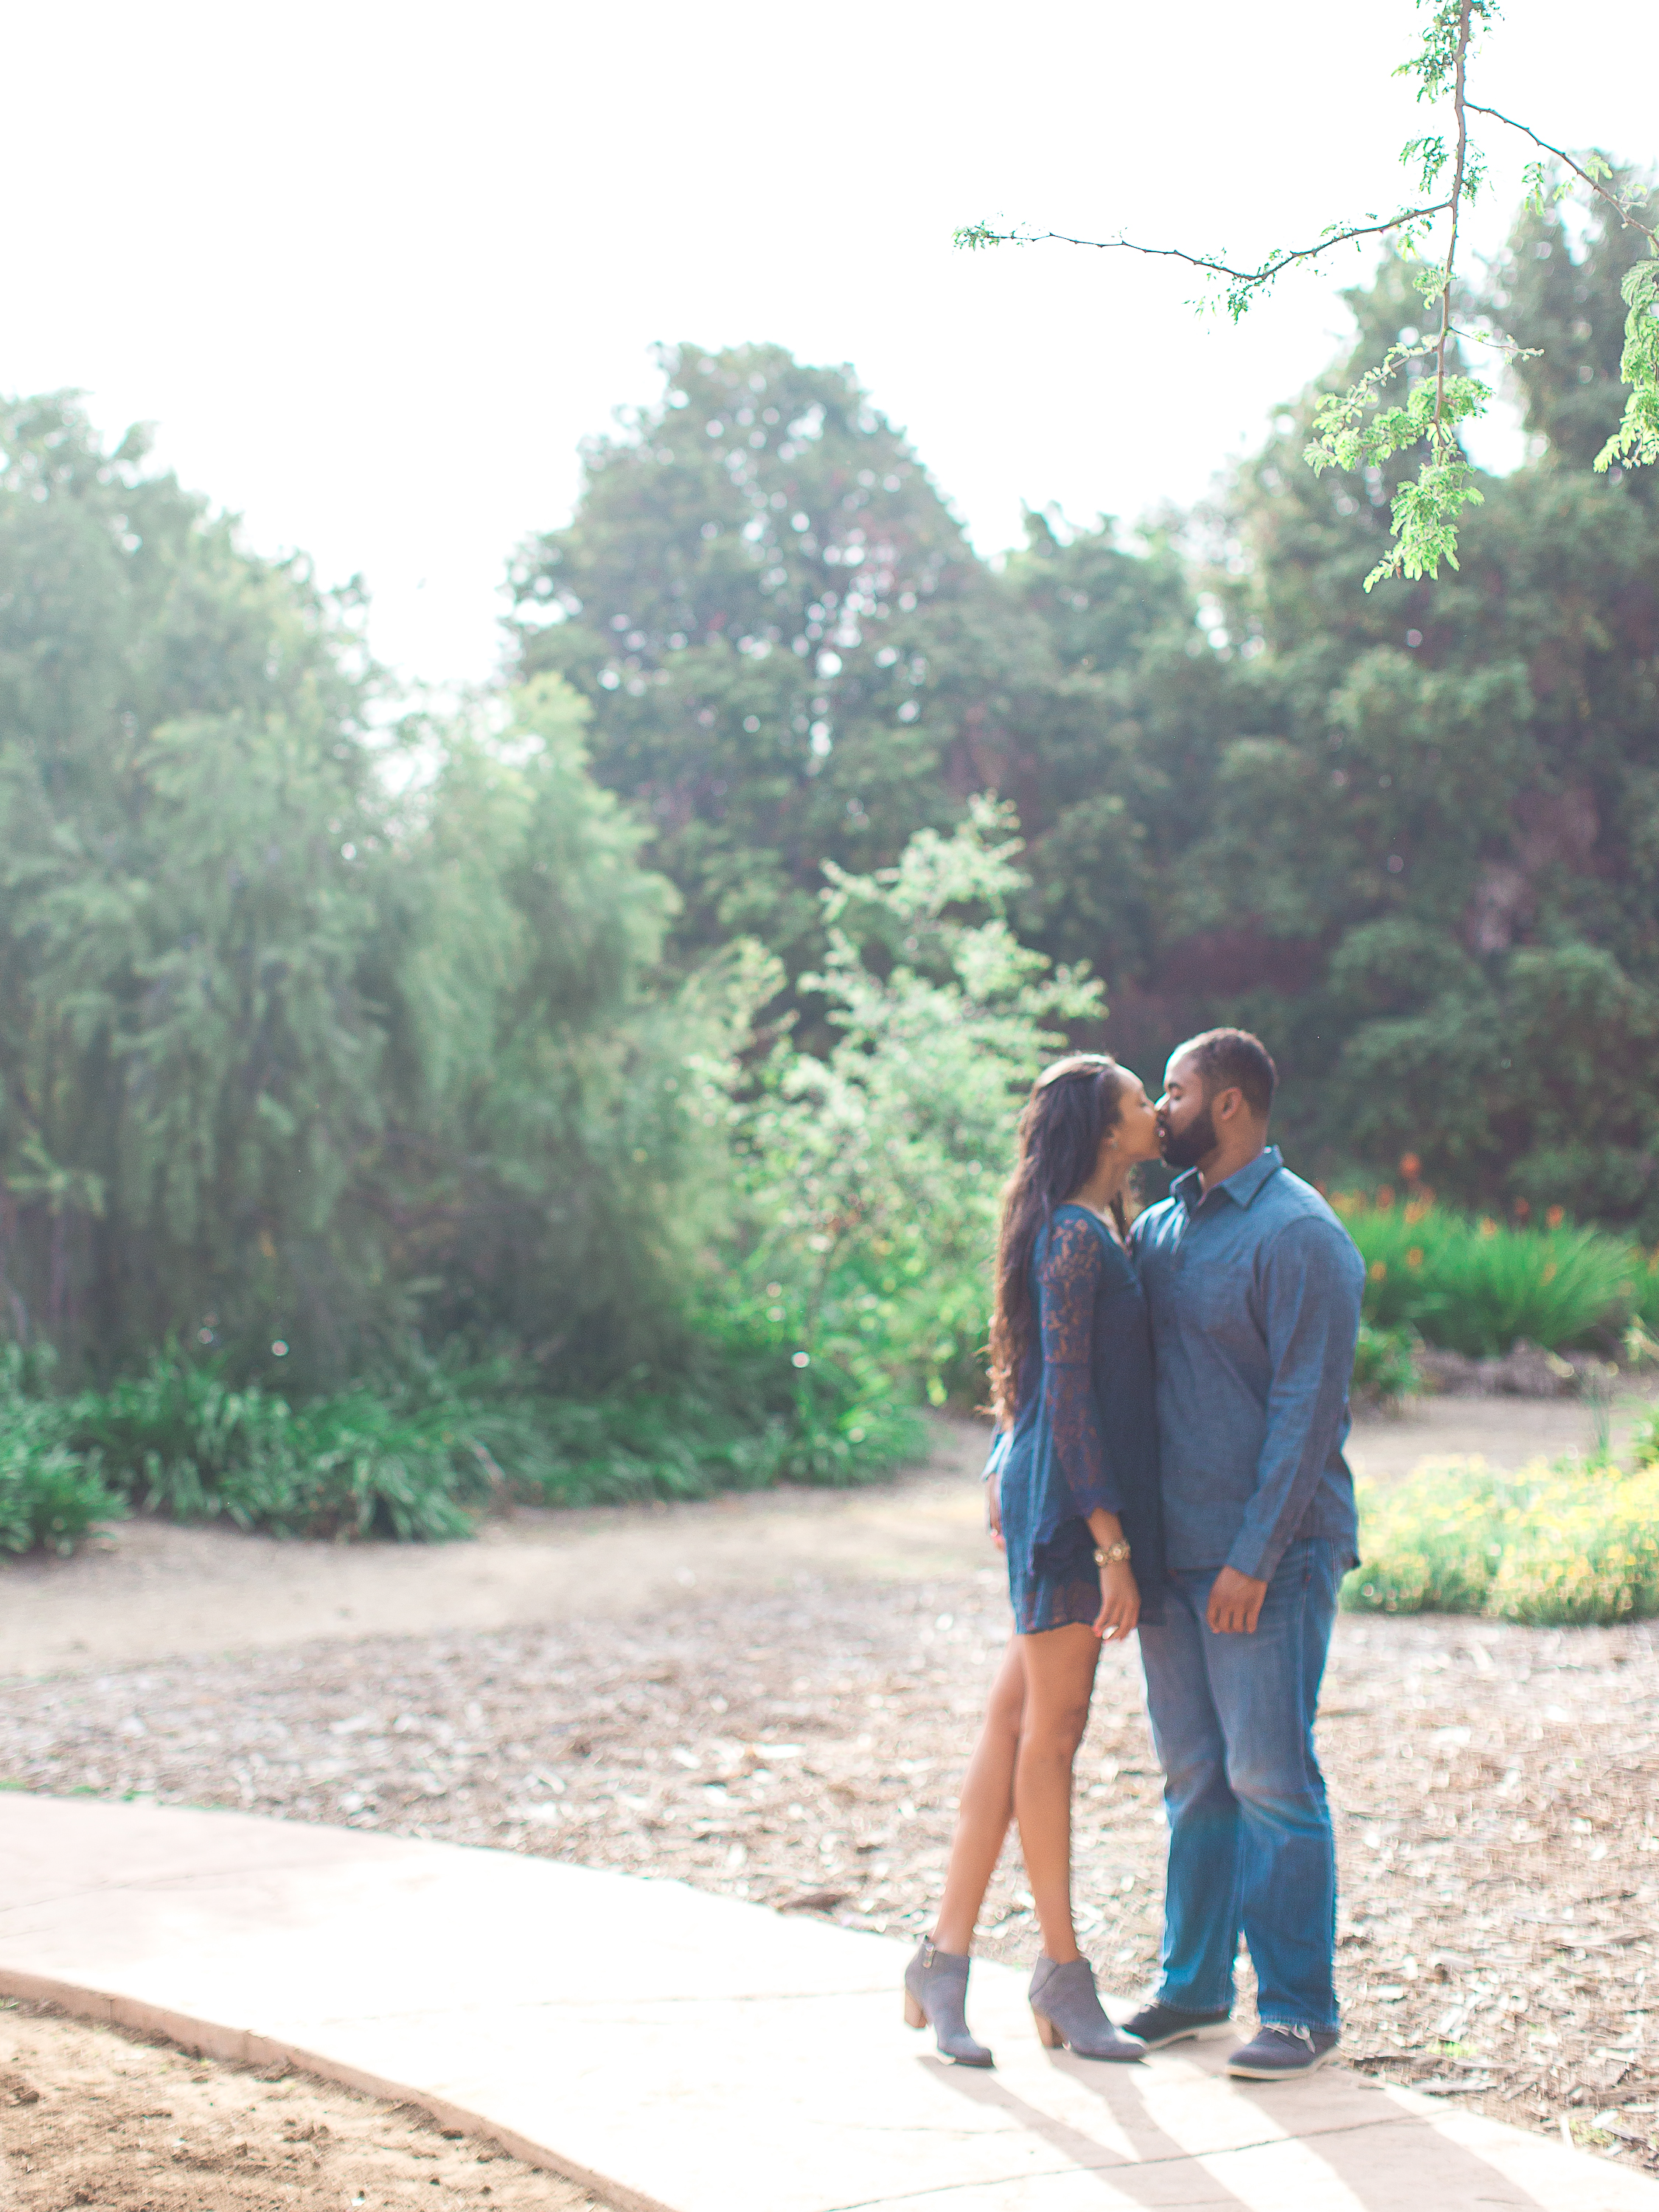 Christa and Greg Engagement_Brandon J Ferlin Photography-23.jpg